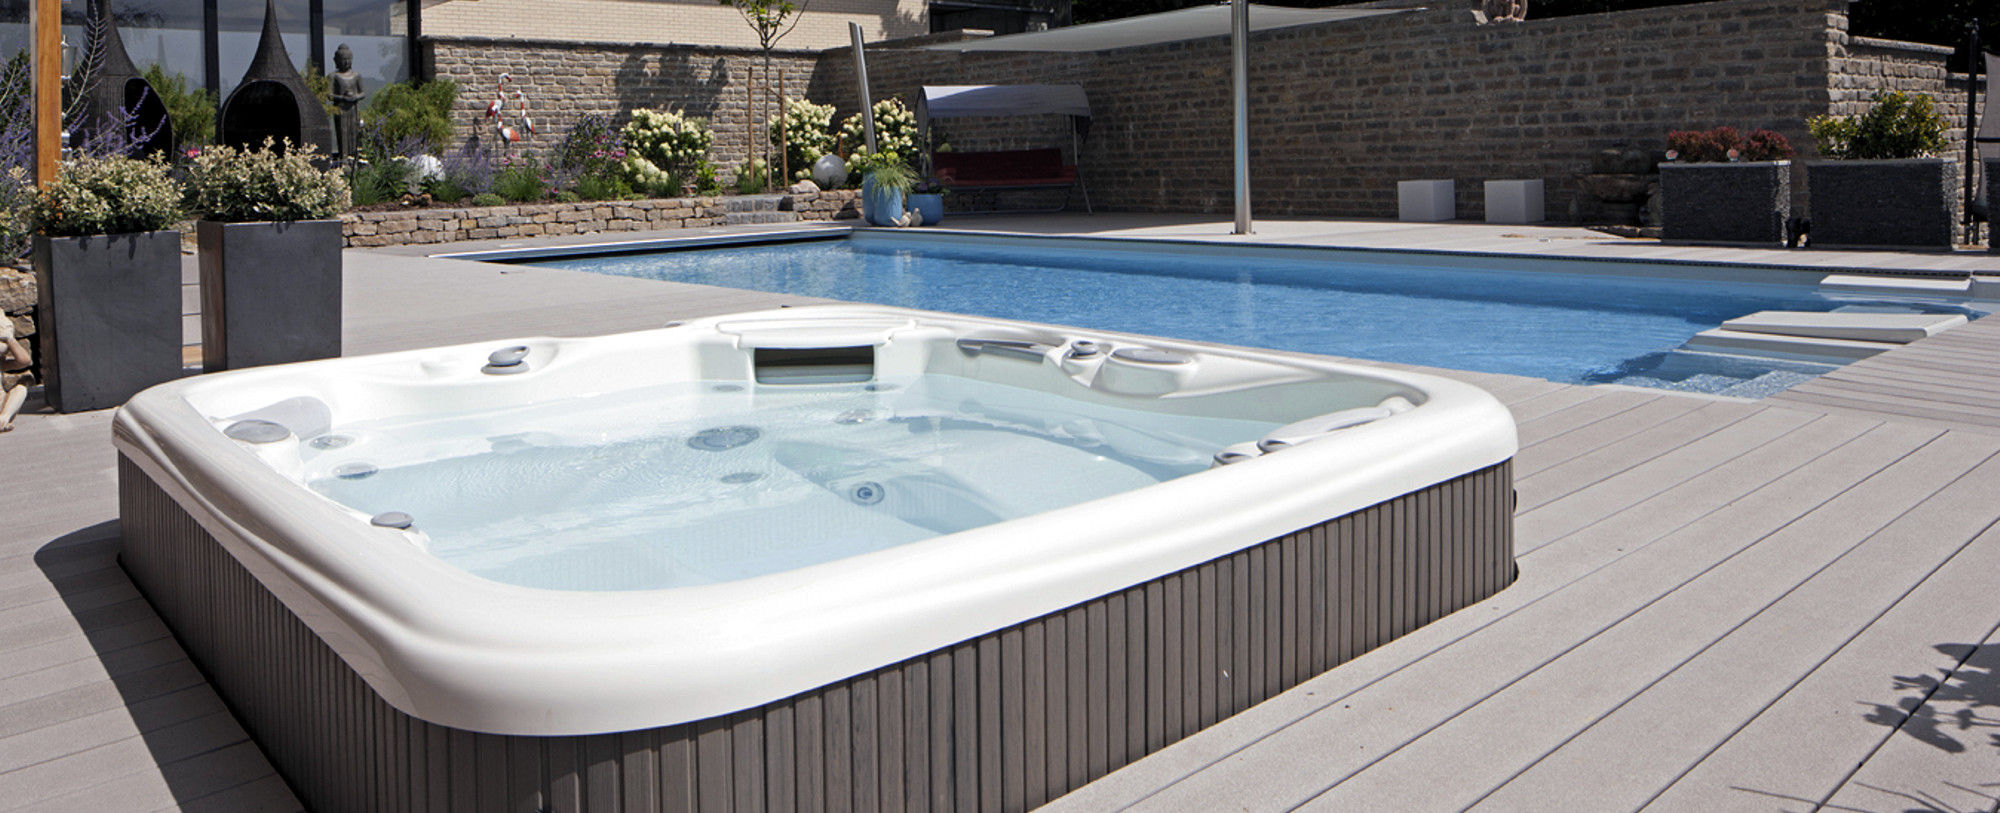 Whirlpool Jacuzzi In-outdoor Pool Wellness Heizung Massage Aufblasbar 158x158cm Whirlpool Outdoor Whirlpool Outdoor Whirlpool Isolation